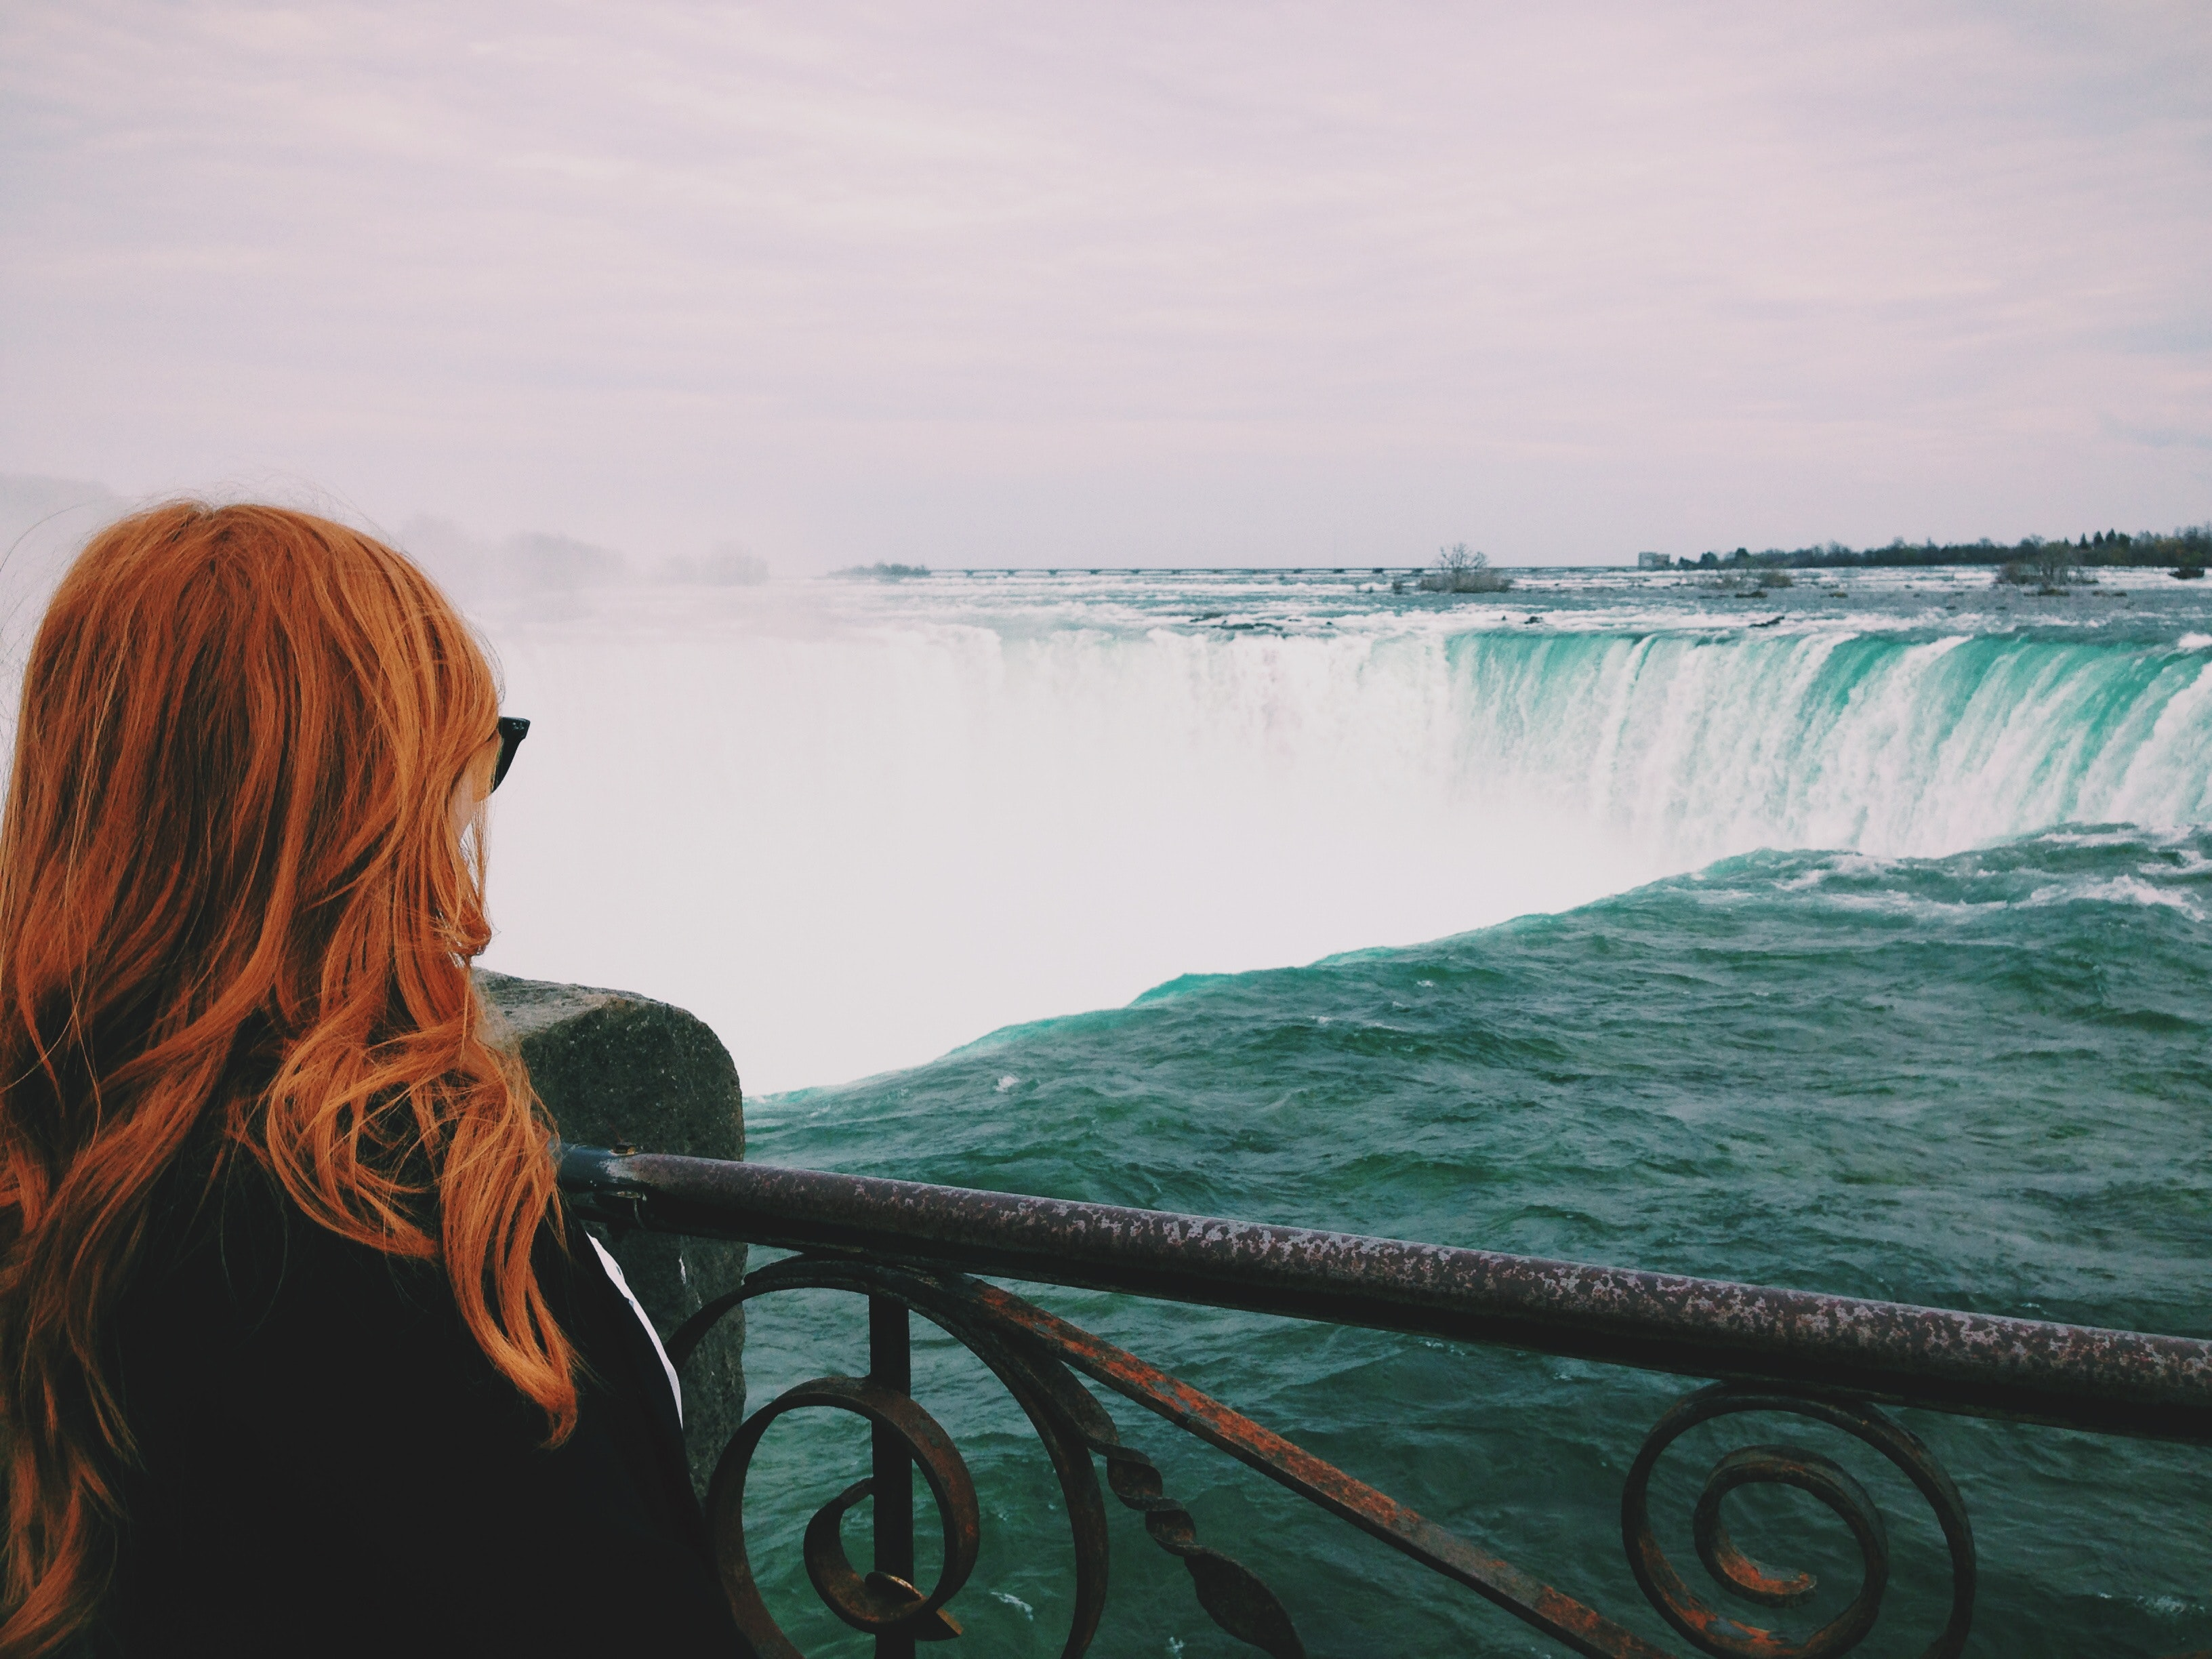 Woman Standing Near of Niagara Falls, Back, Scenic, Wind, Waves, HQ Photo